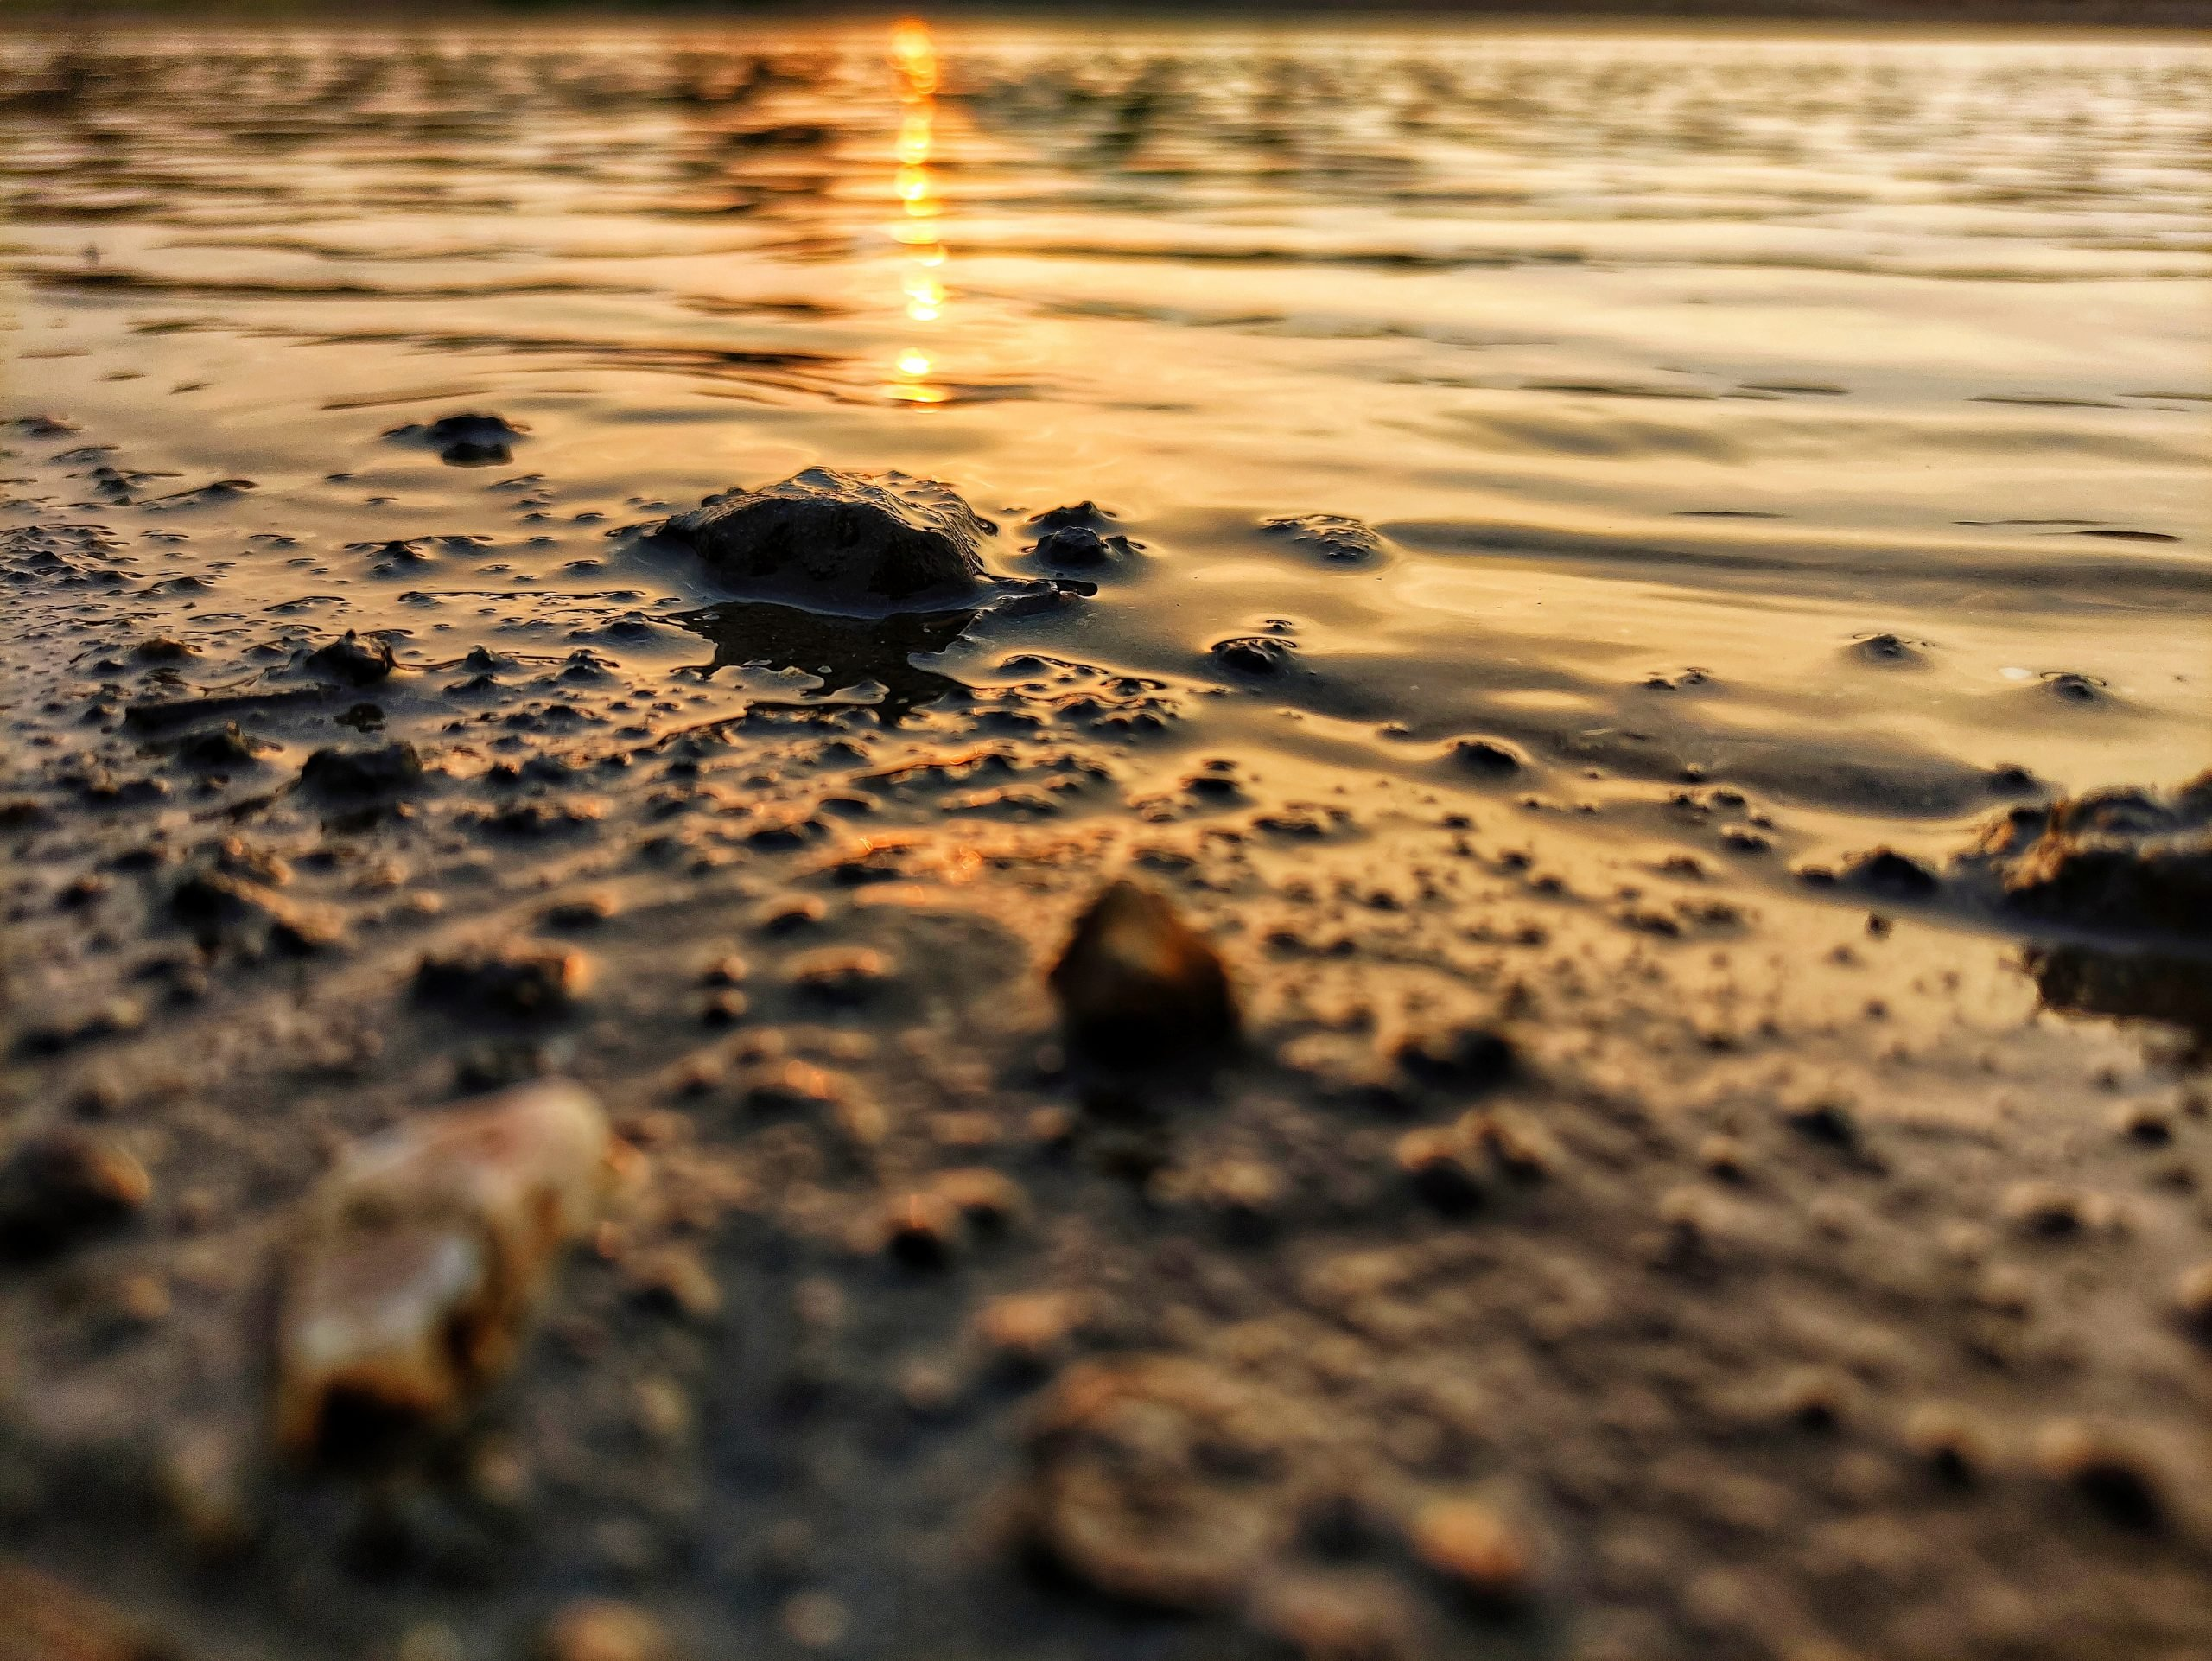 Sunrays falling on muddy water